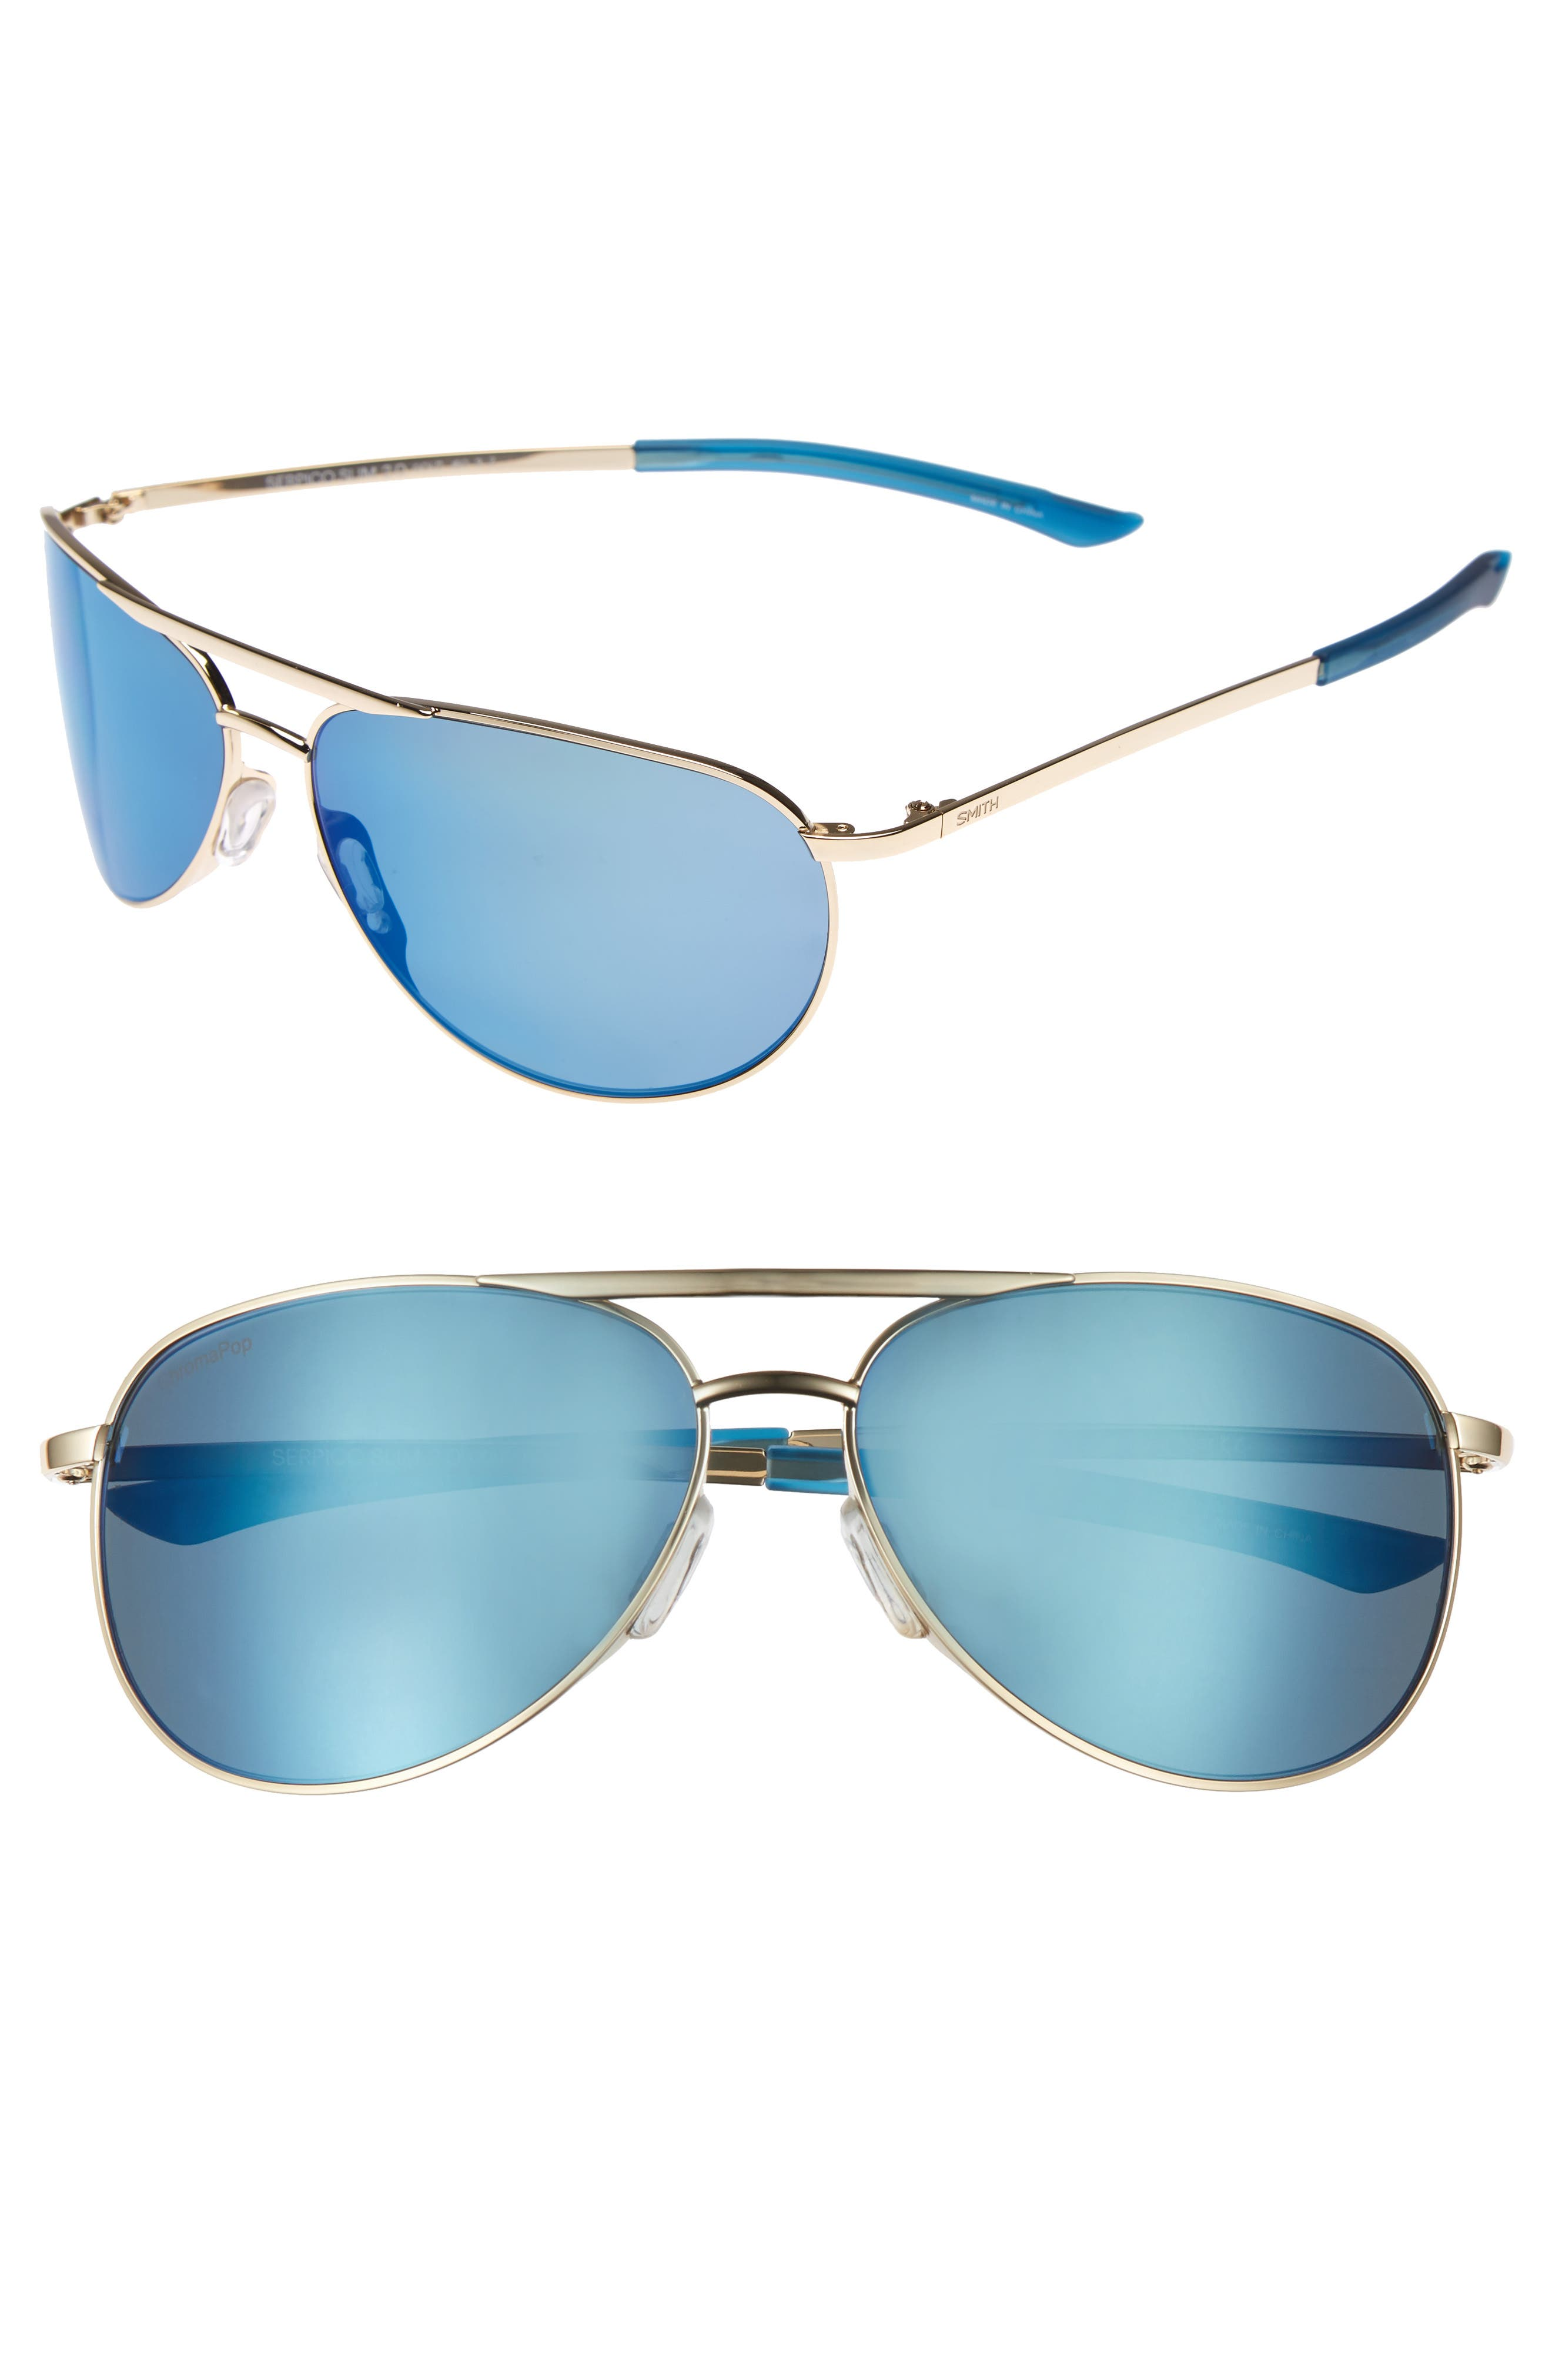 Serpico Slim 2.0 60mm ChromaPop Polarized Aviator Sunglasses,                         Main,                         color, Gold/ Blue Polar